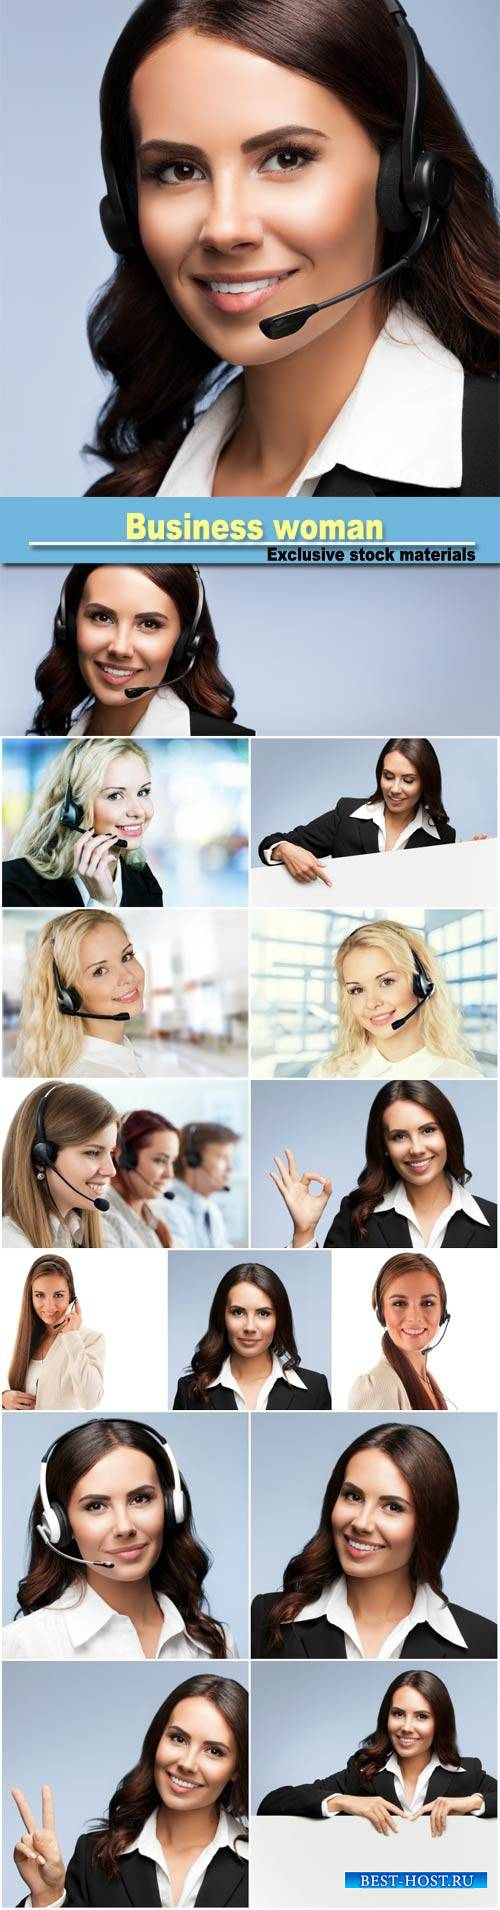 Business woman, women operators